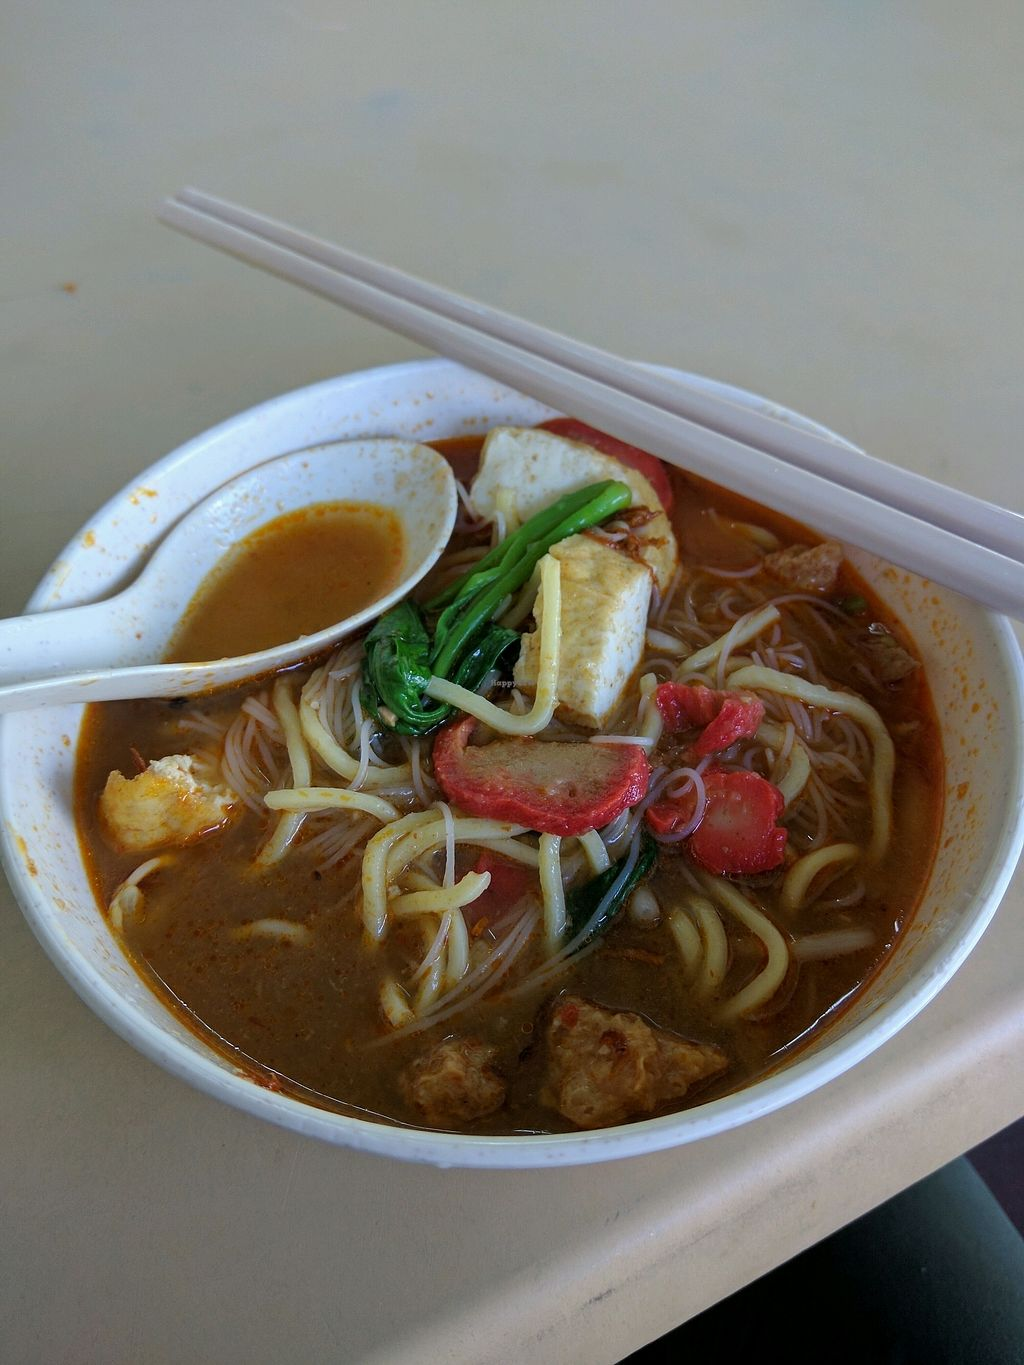 """Photo of Jian Jian Vegetarian Food  by <a href=""""/members/profile/Summer_Tan"""">Summer_Tan</a> <br/>Monday's Special: Hokkien Mee Cheap, generous with toppings, good portion. The Broth is flavourful with the good spicy chilli <br/> January 28, 2018  - <a href='/contact/abuse/image/87563/352097'>Report</a>"""